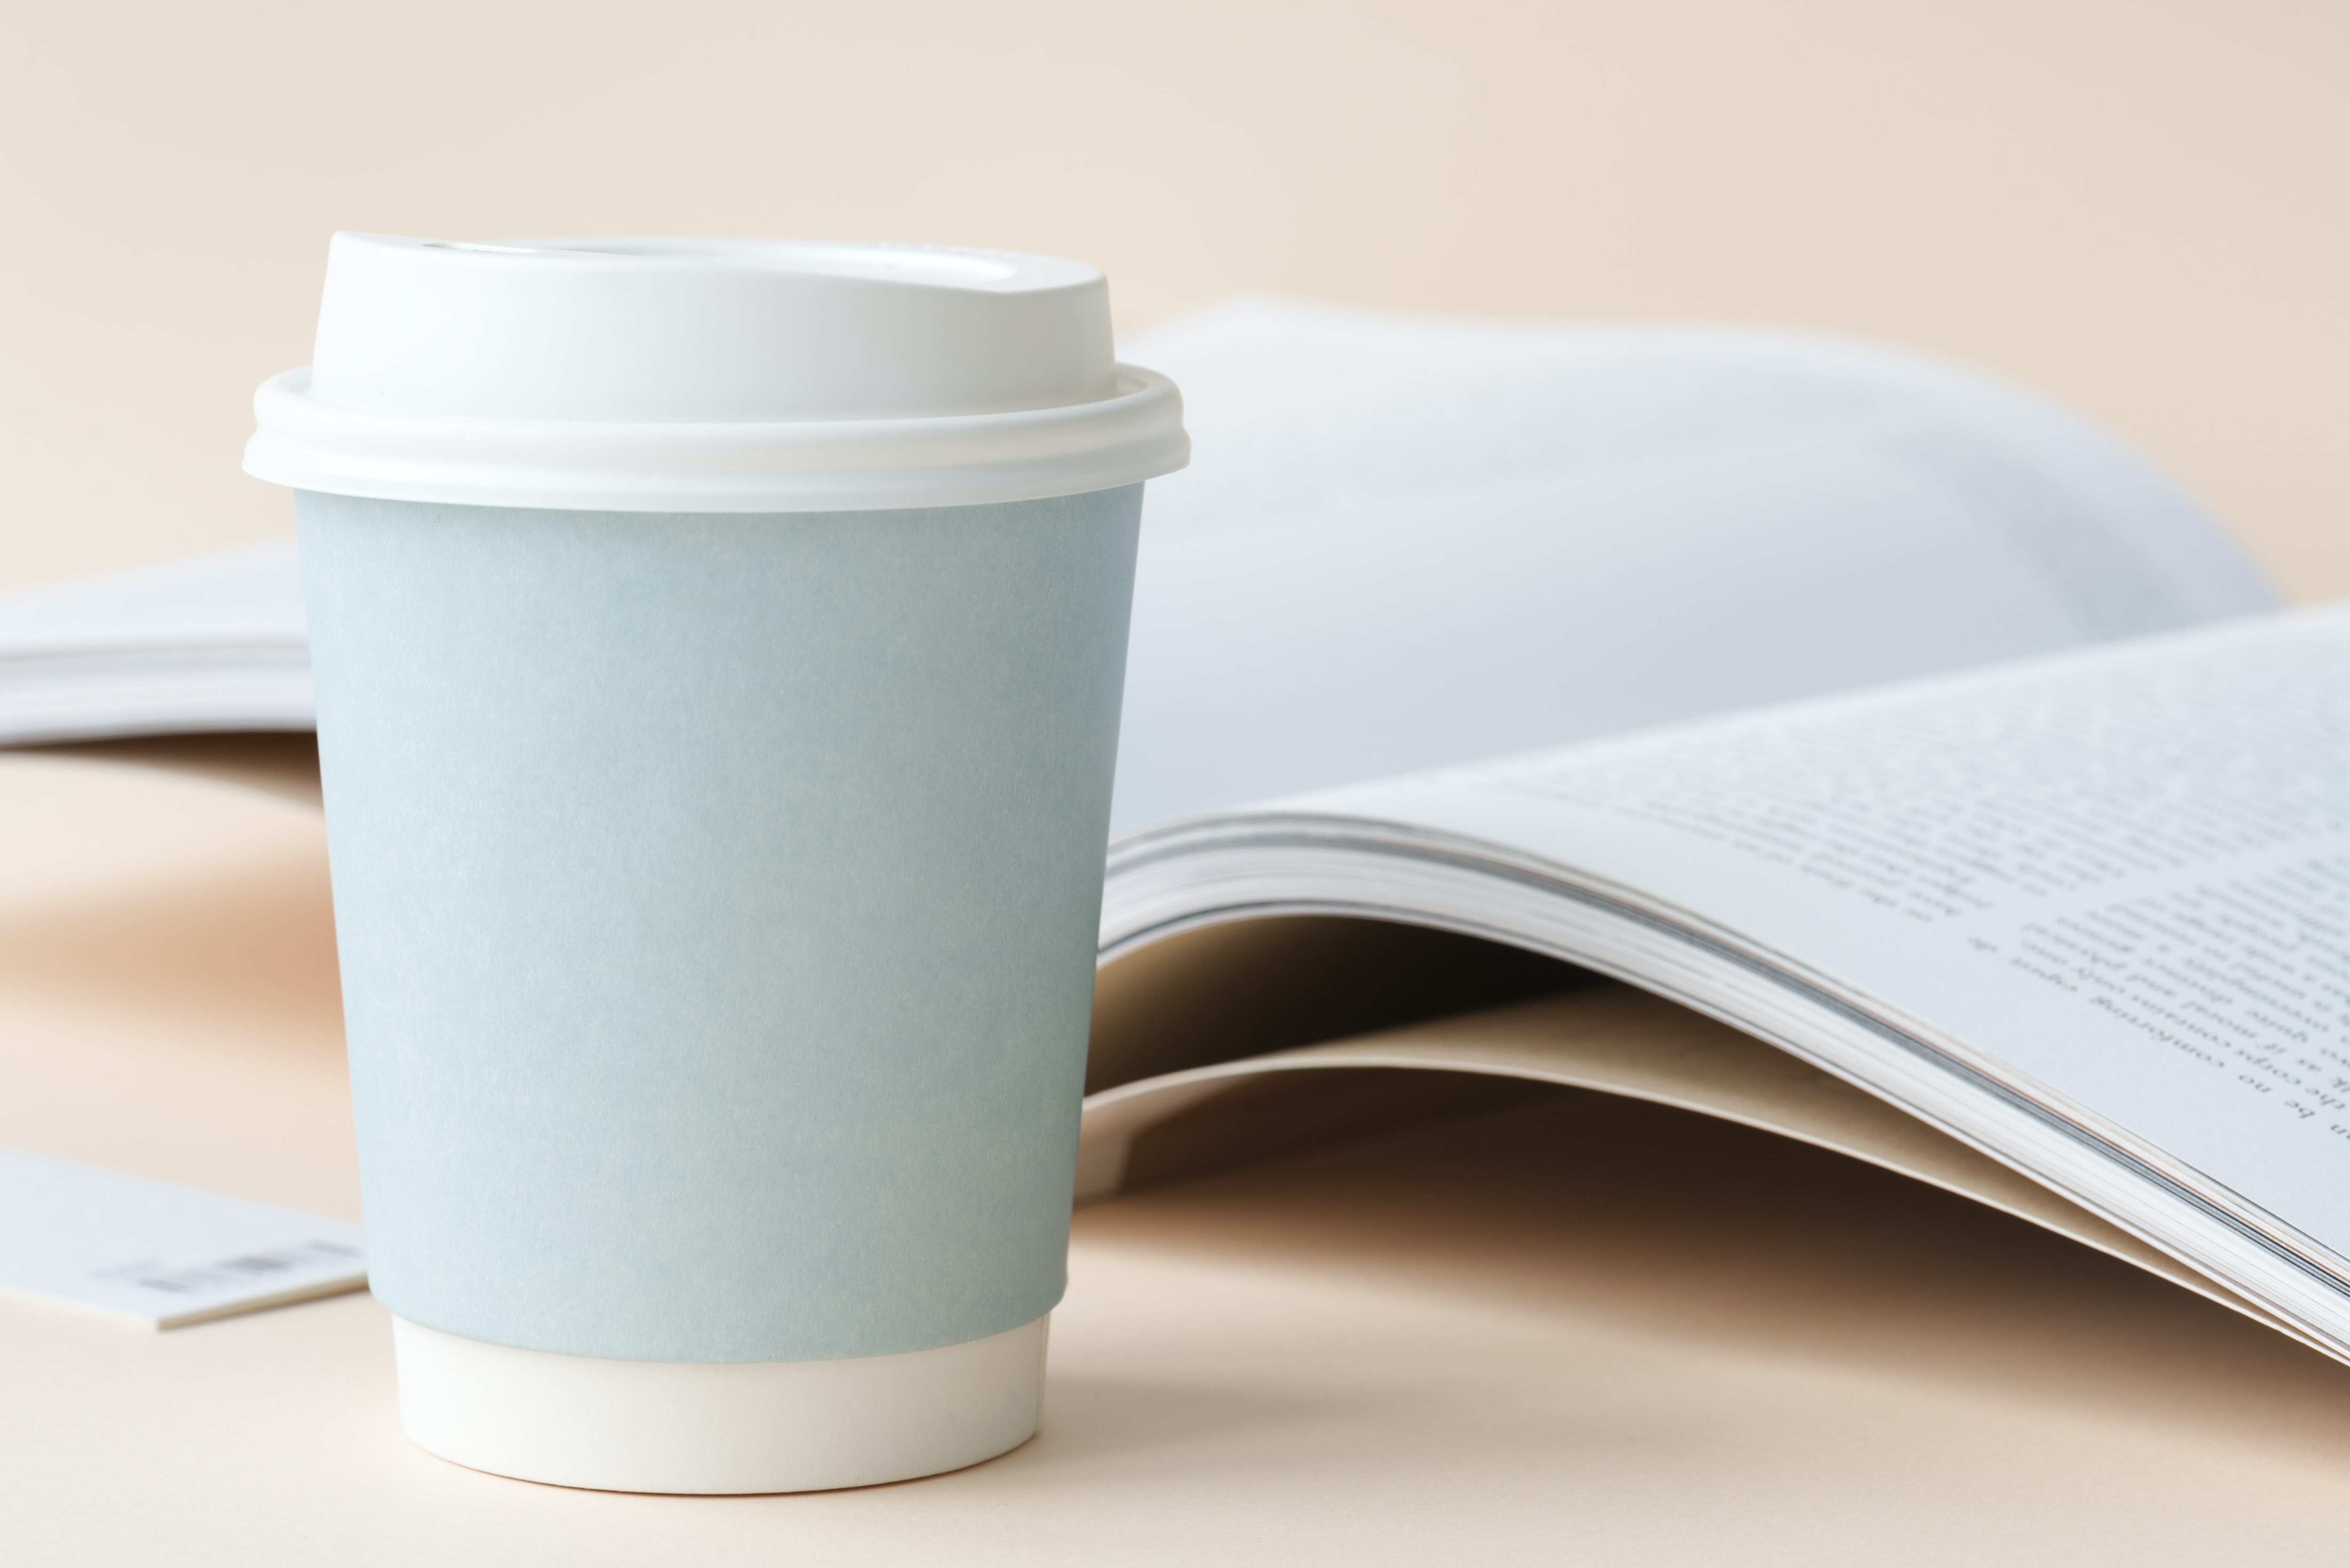 disposable cup near book